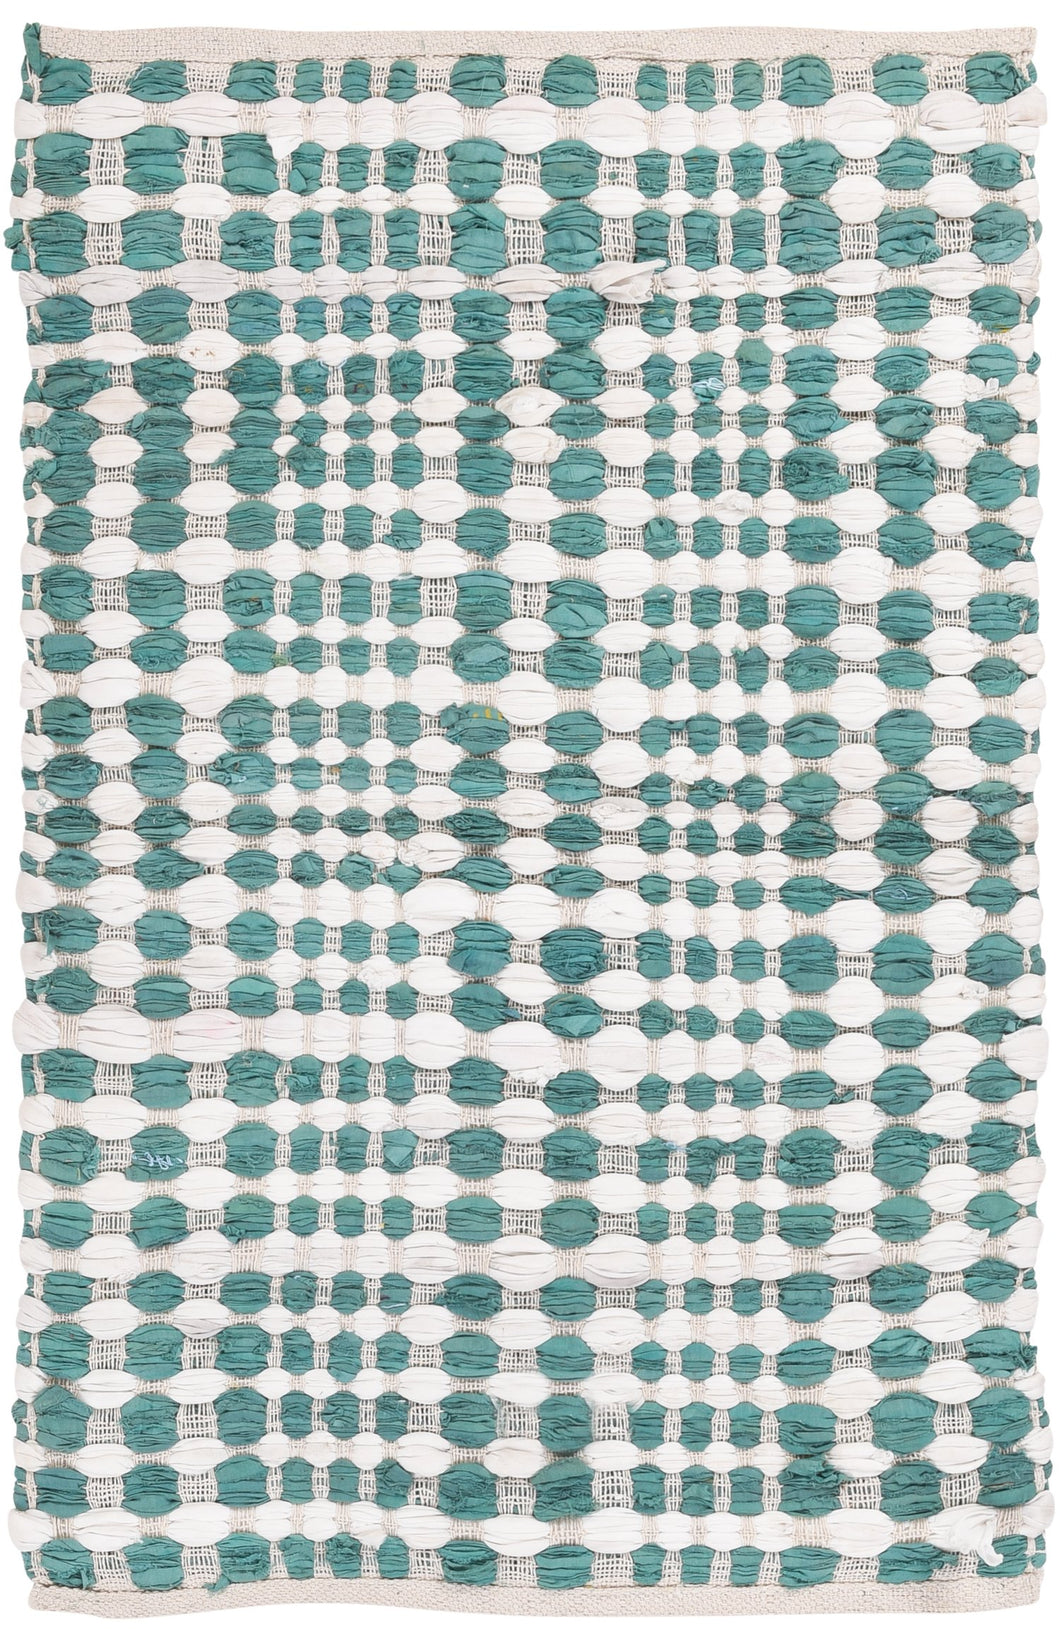 Green + white cotton slub rug